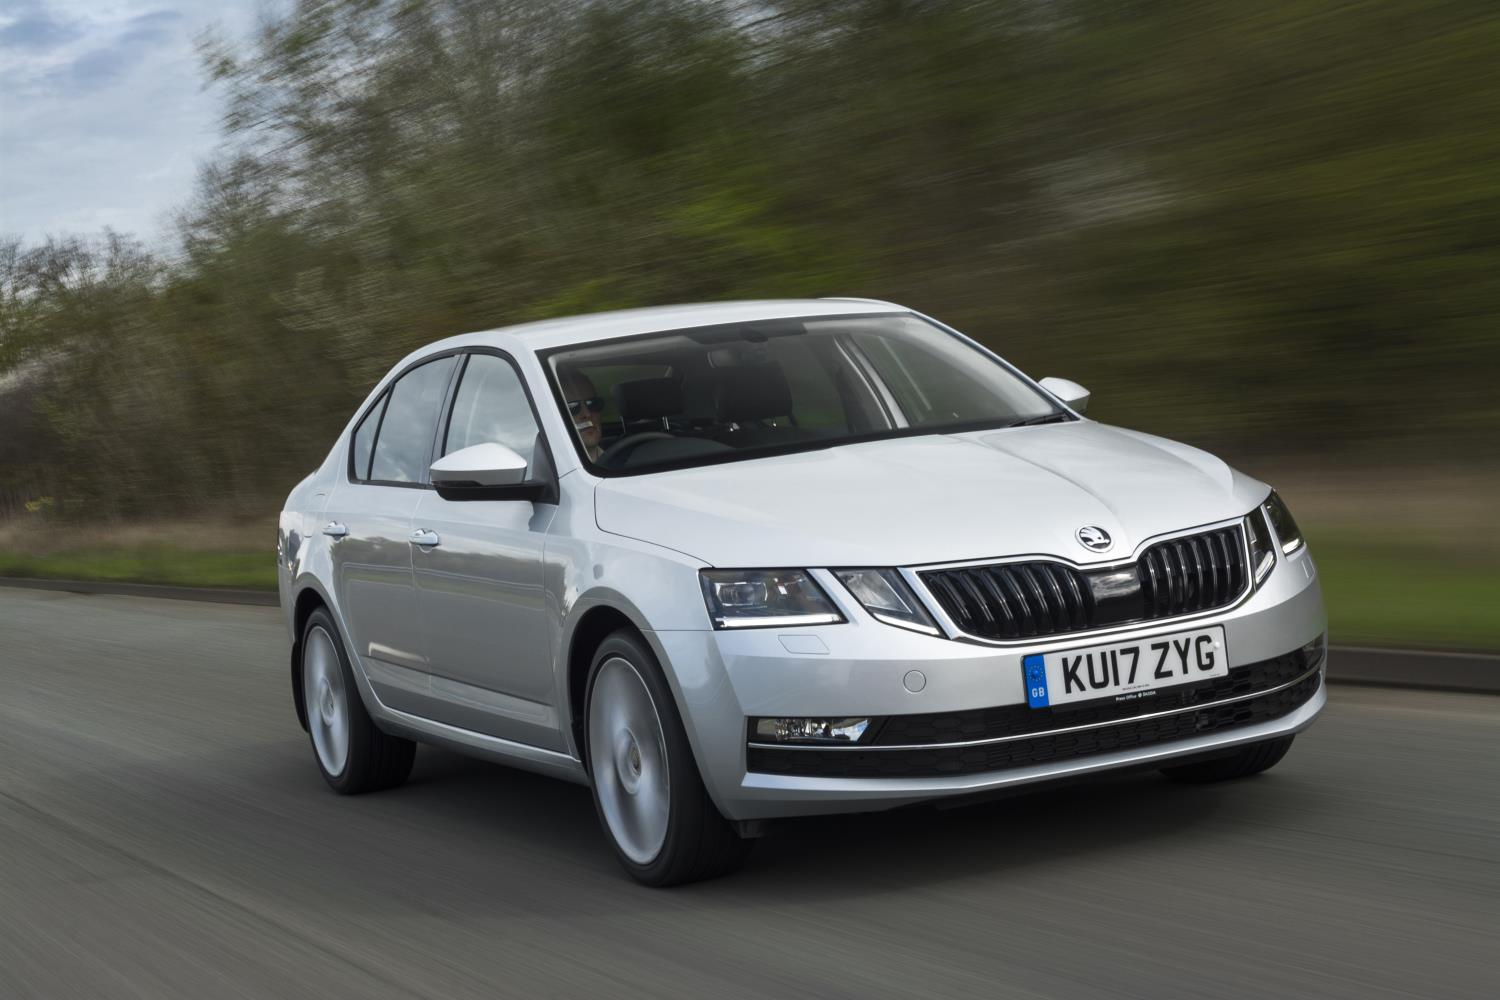 Skoda Octavia silver front view